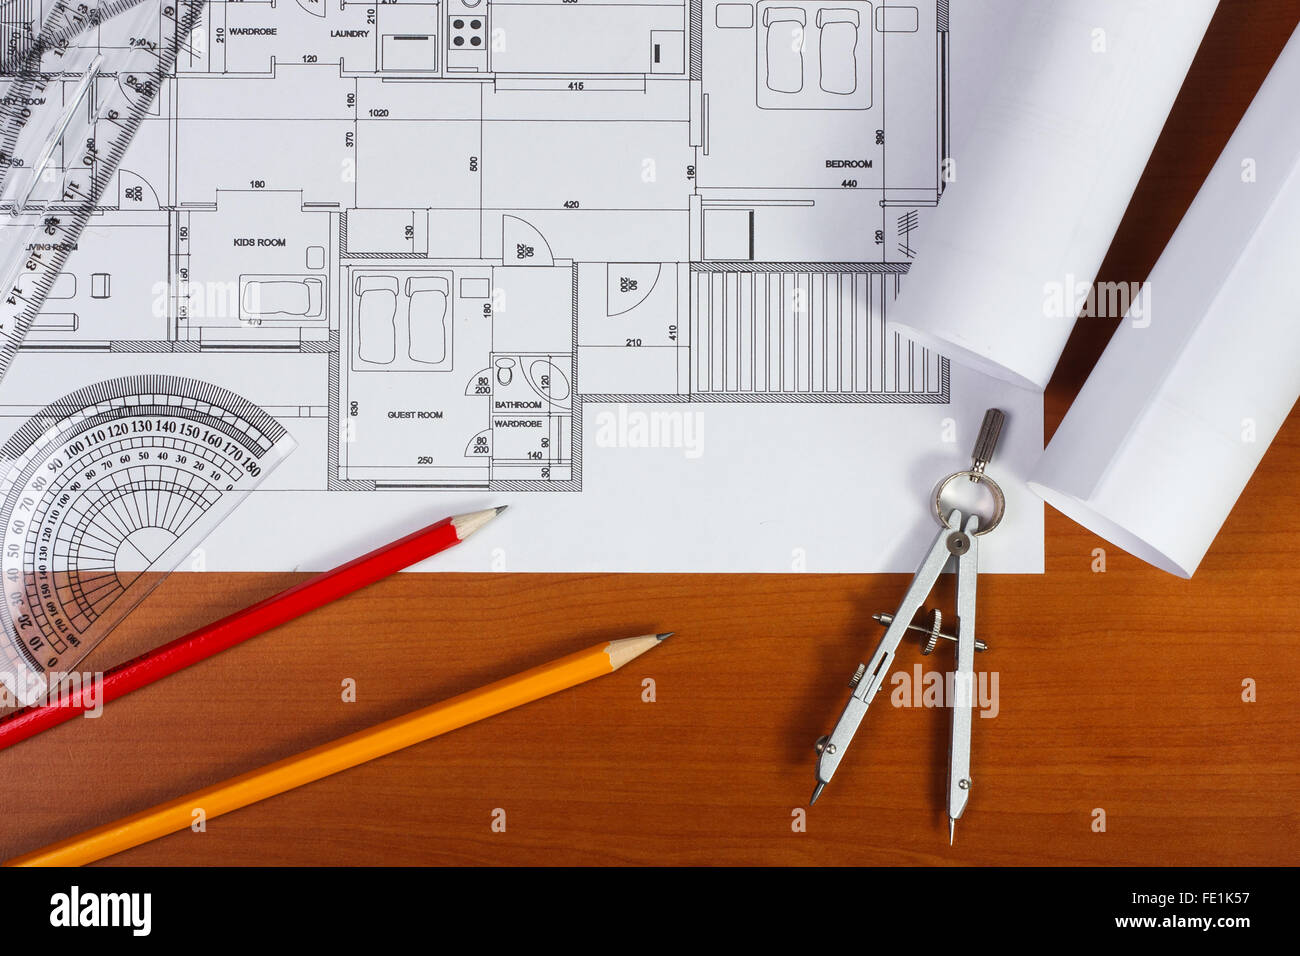 Architectural plans, pencils and ruler on the desk - Stock Image